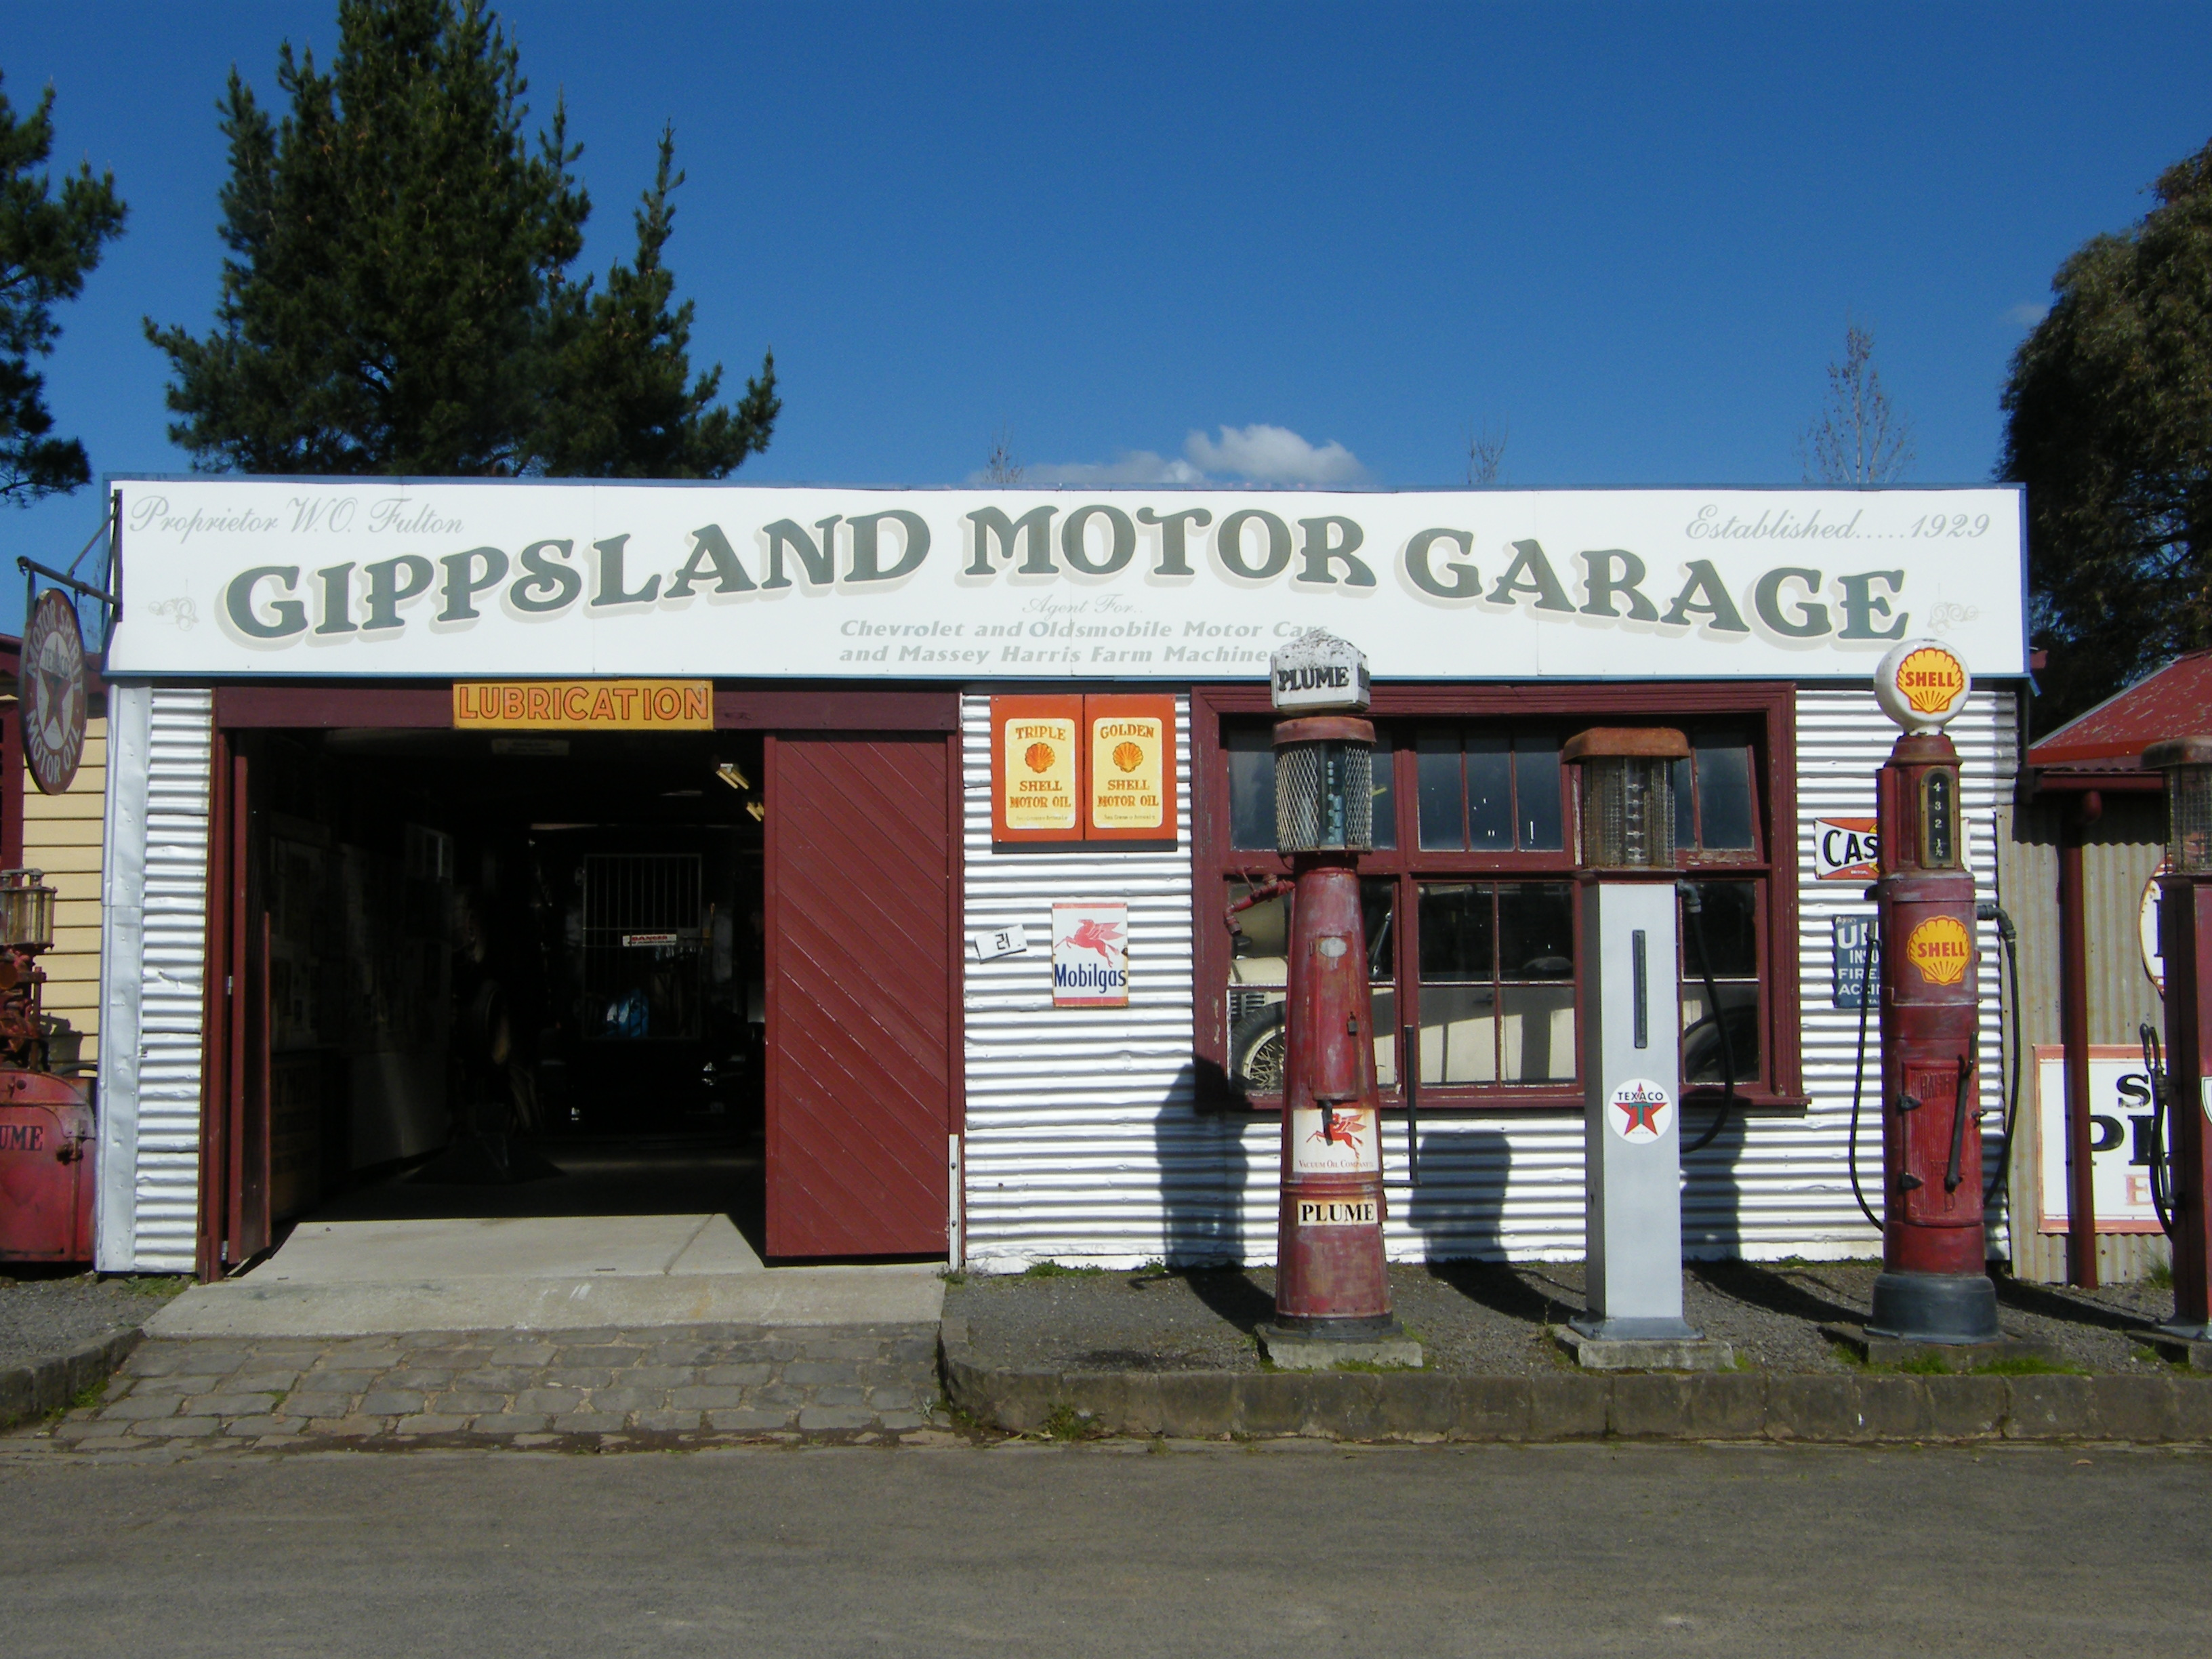 FileGippsland Motor Garage Old GippstownJPG Wikimedia